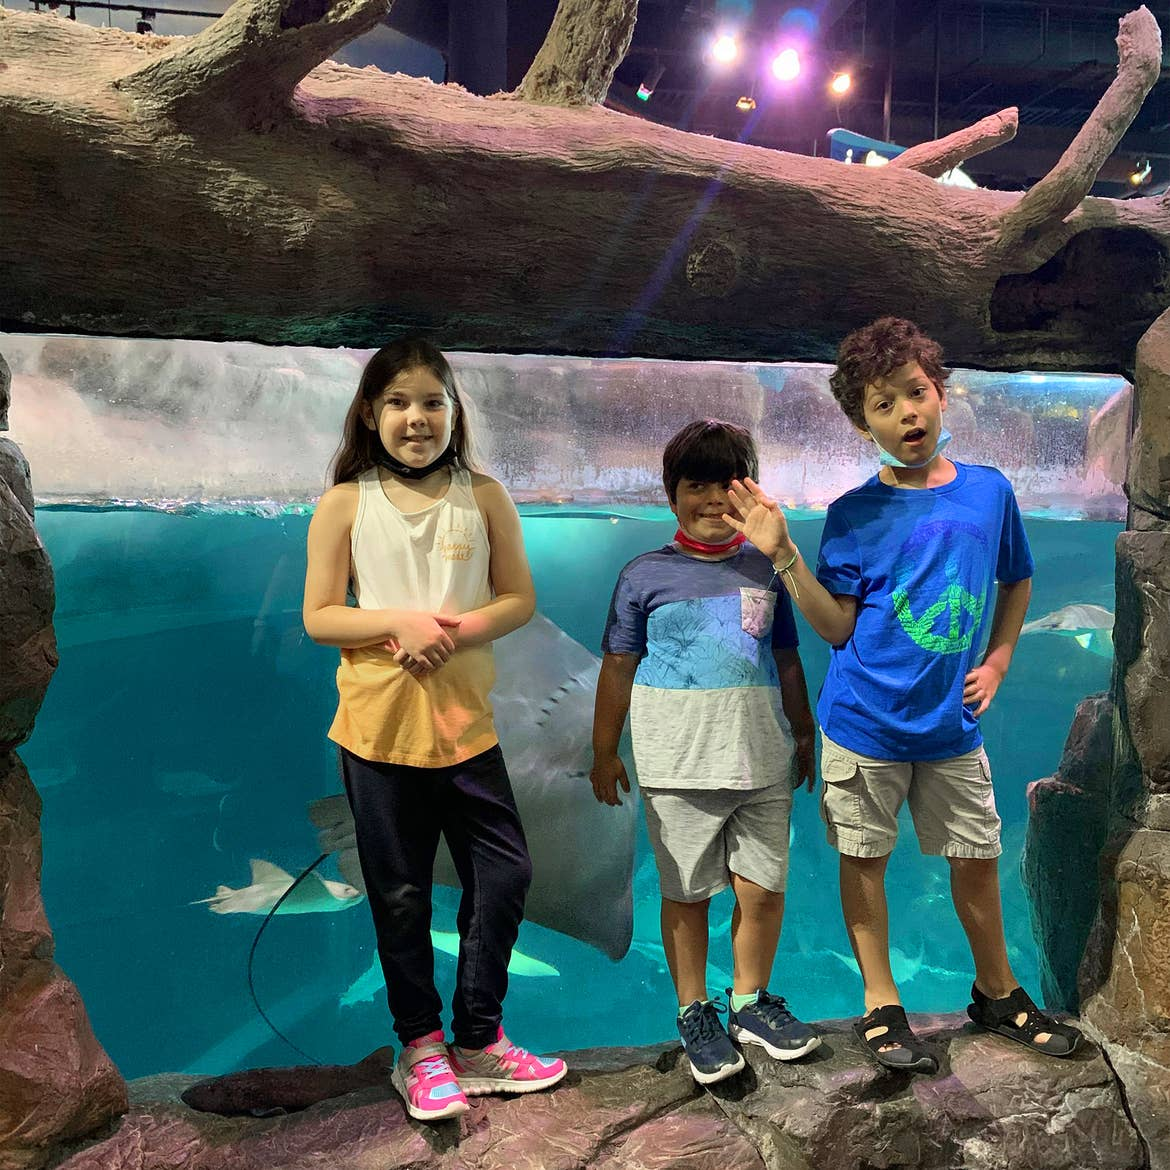 A young girls and two boys stand in front of a stingray enclosure.